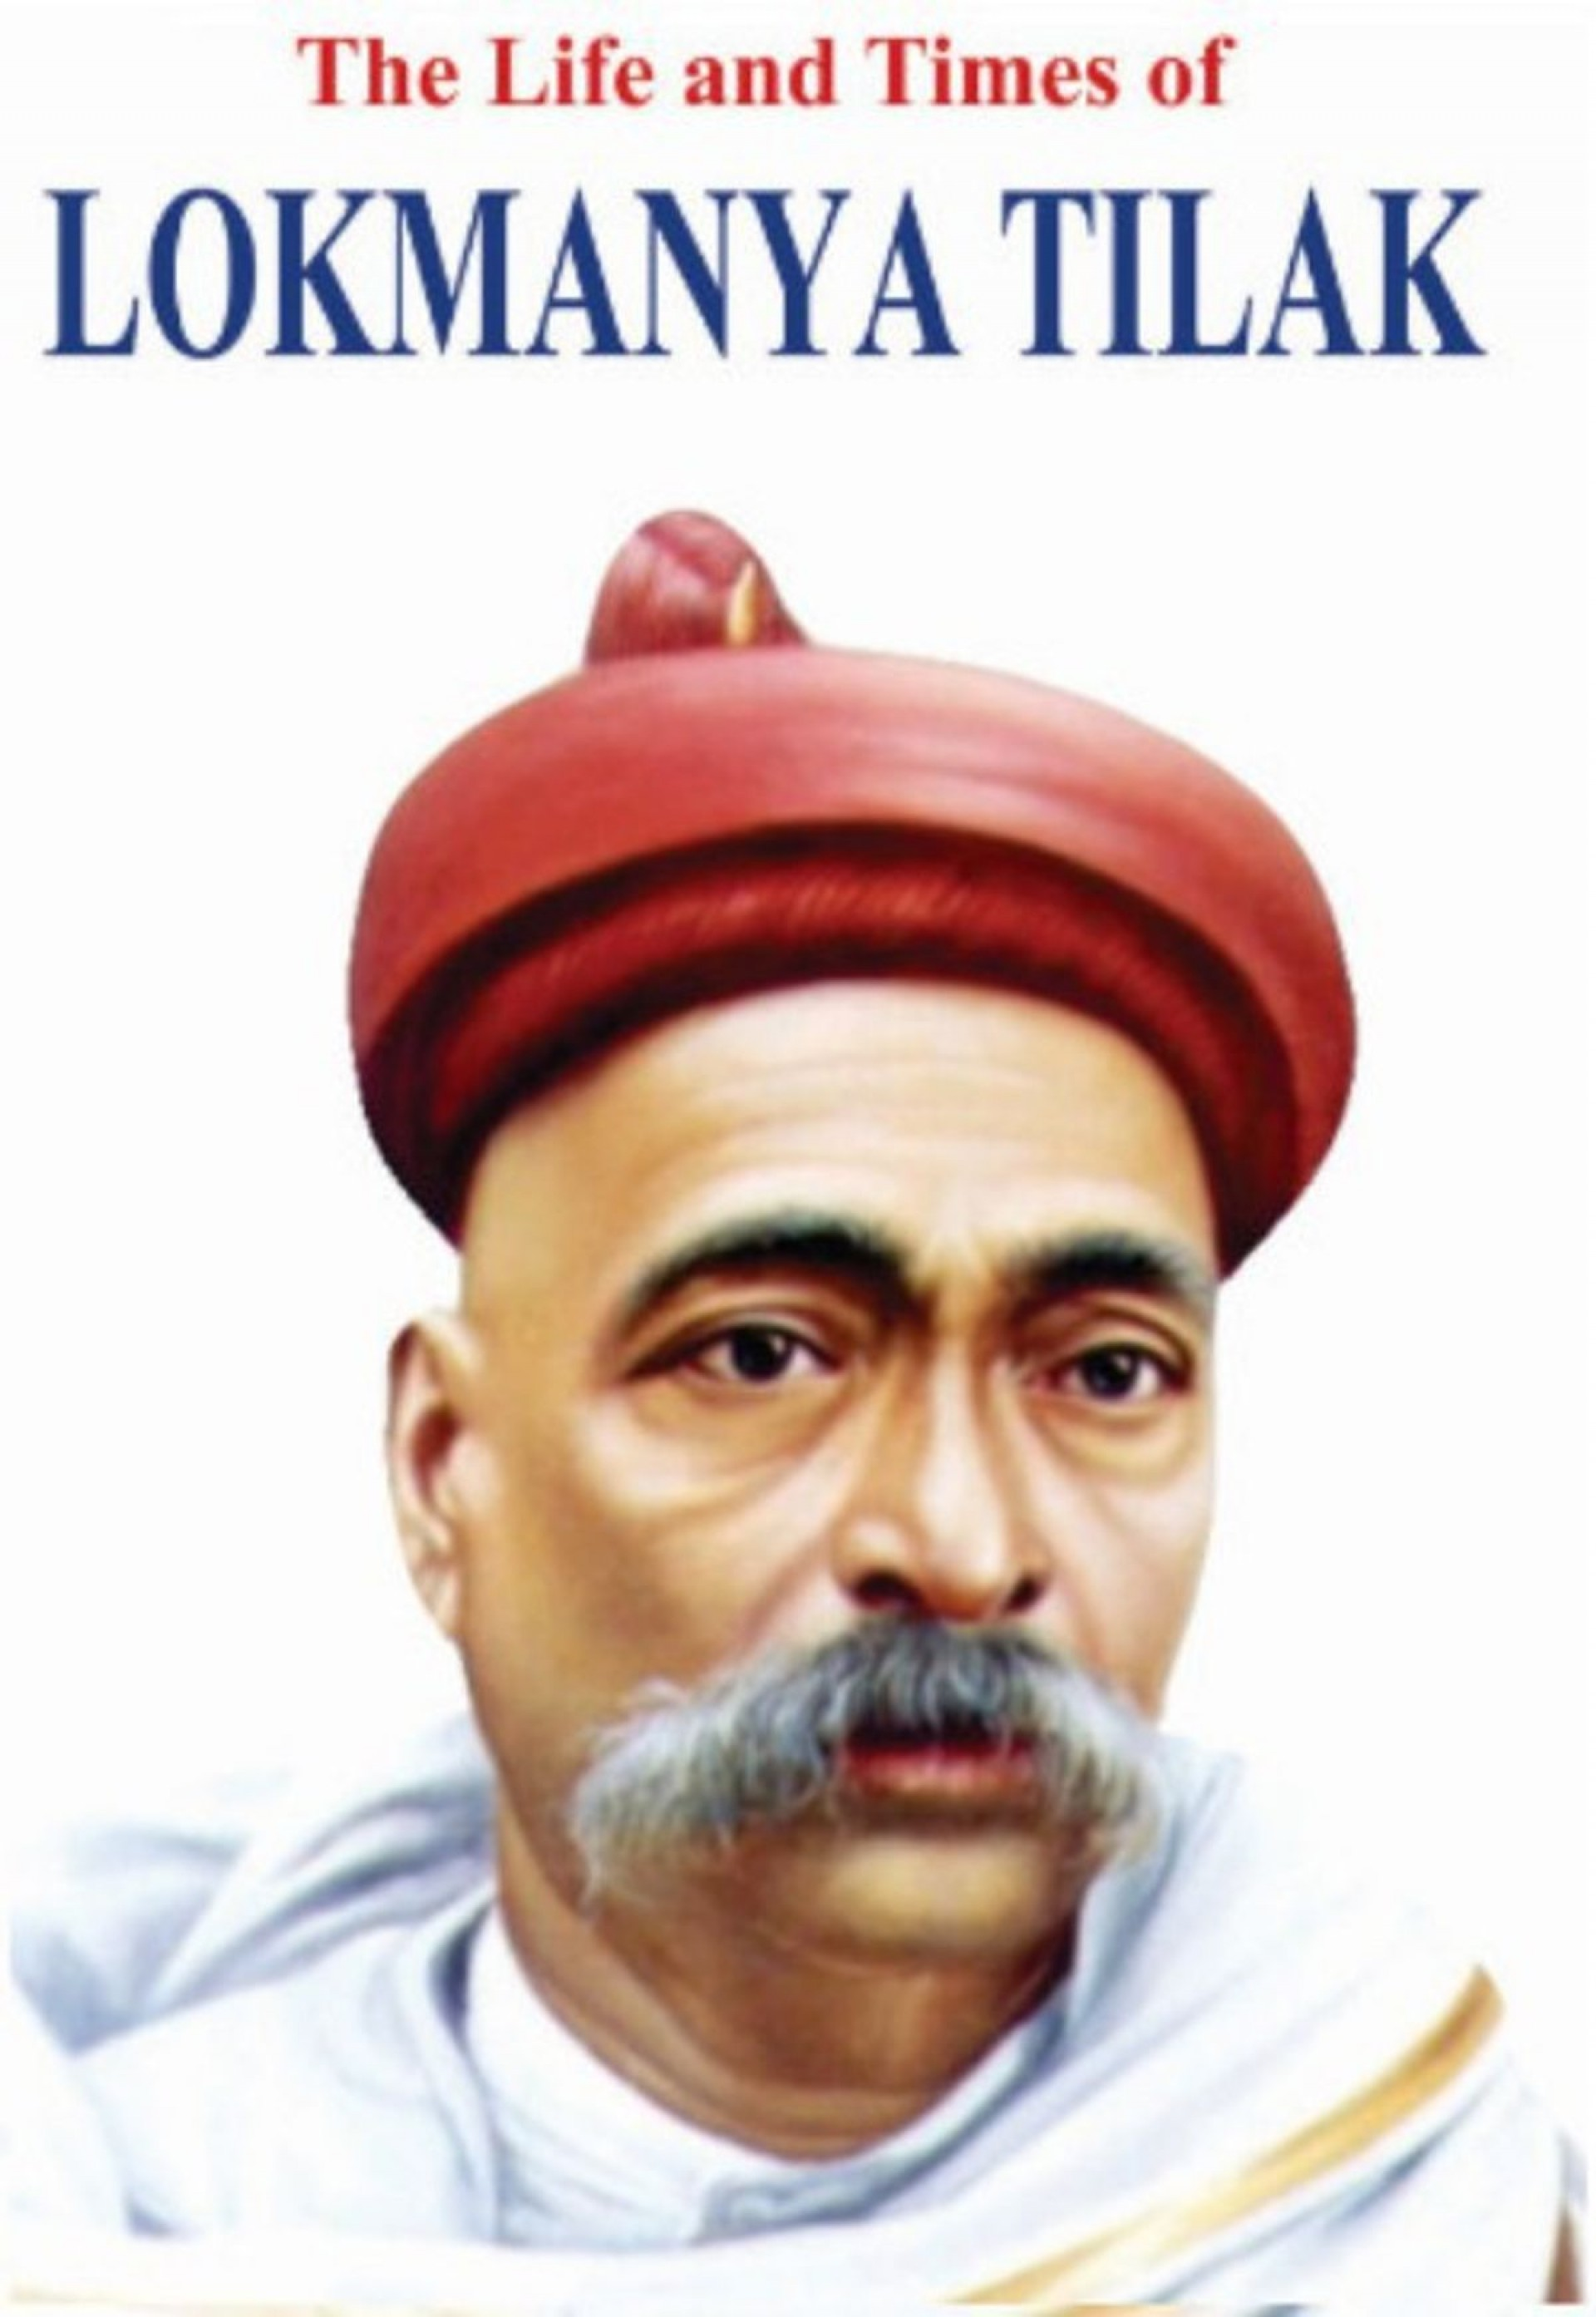 023 Life And Times Of Lokmanya Tilak Essay Incredible Aste Tar In Marathi On Bal Gangadhar Hindi Pdf 1920